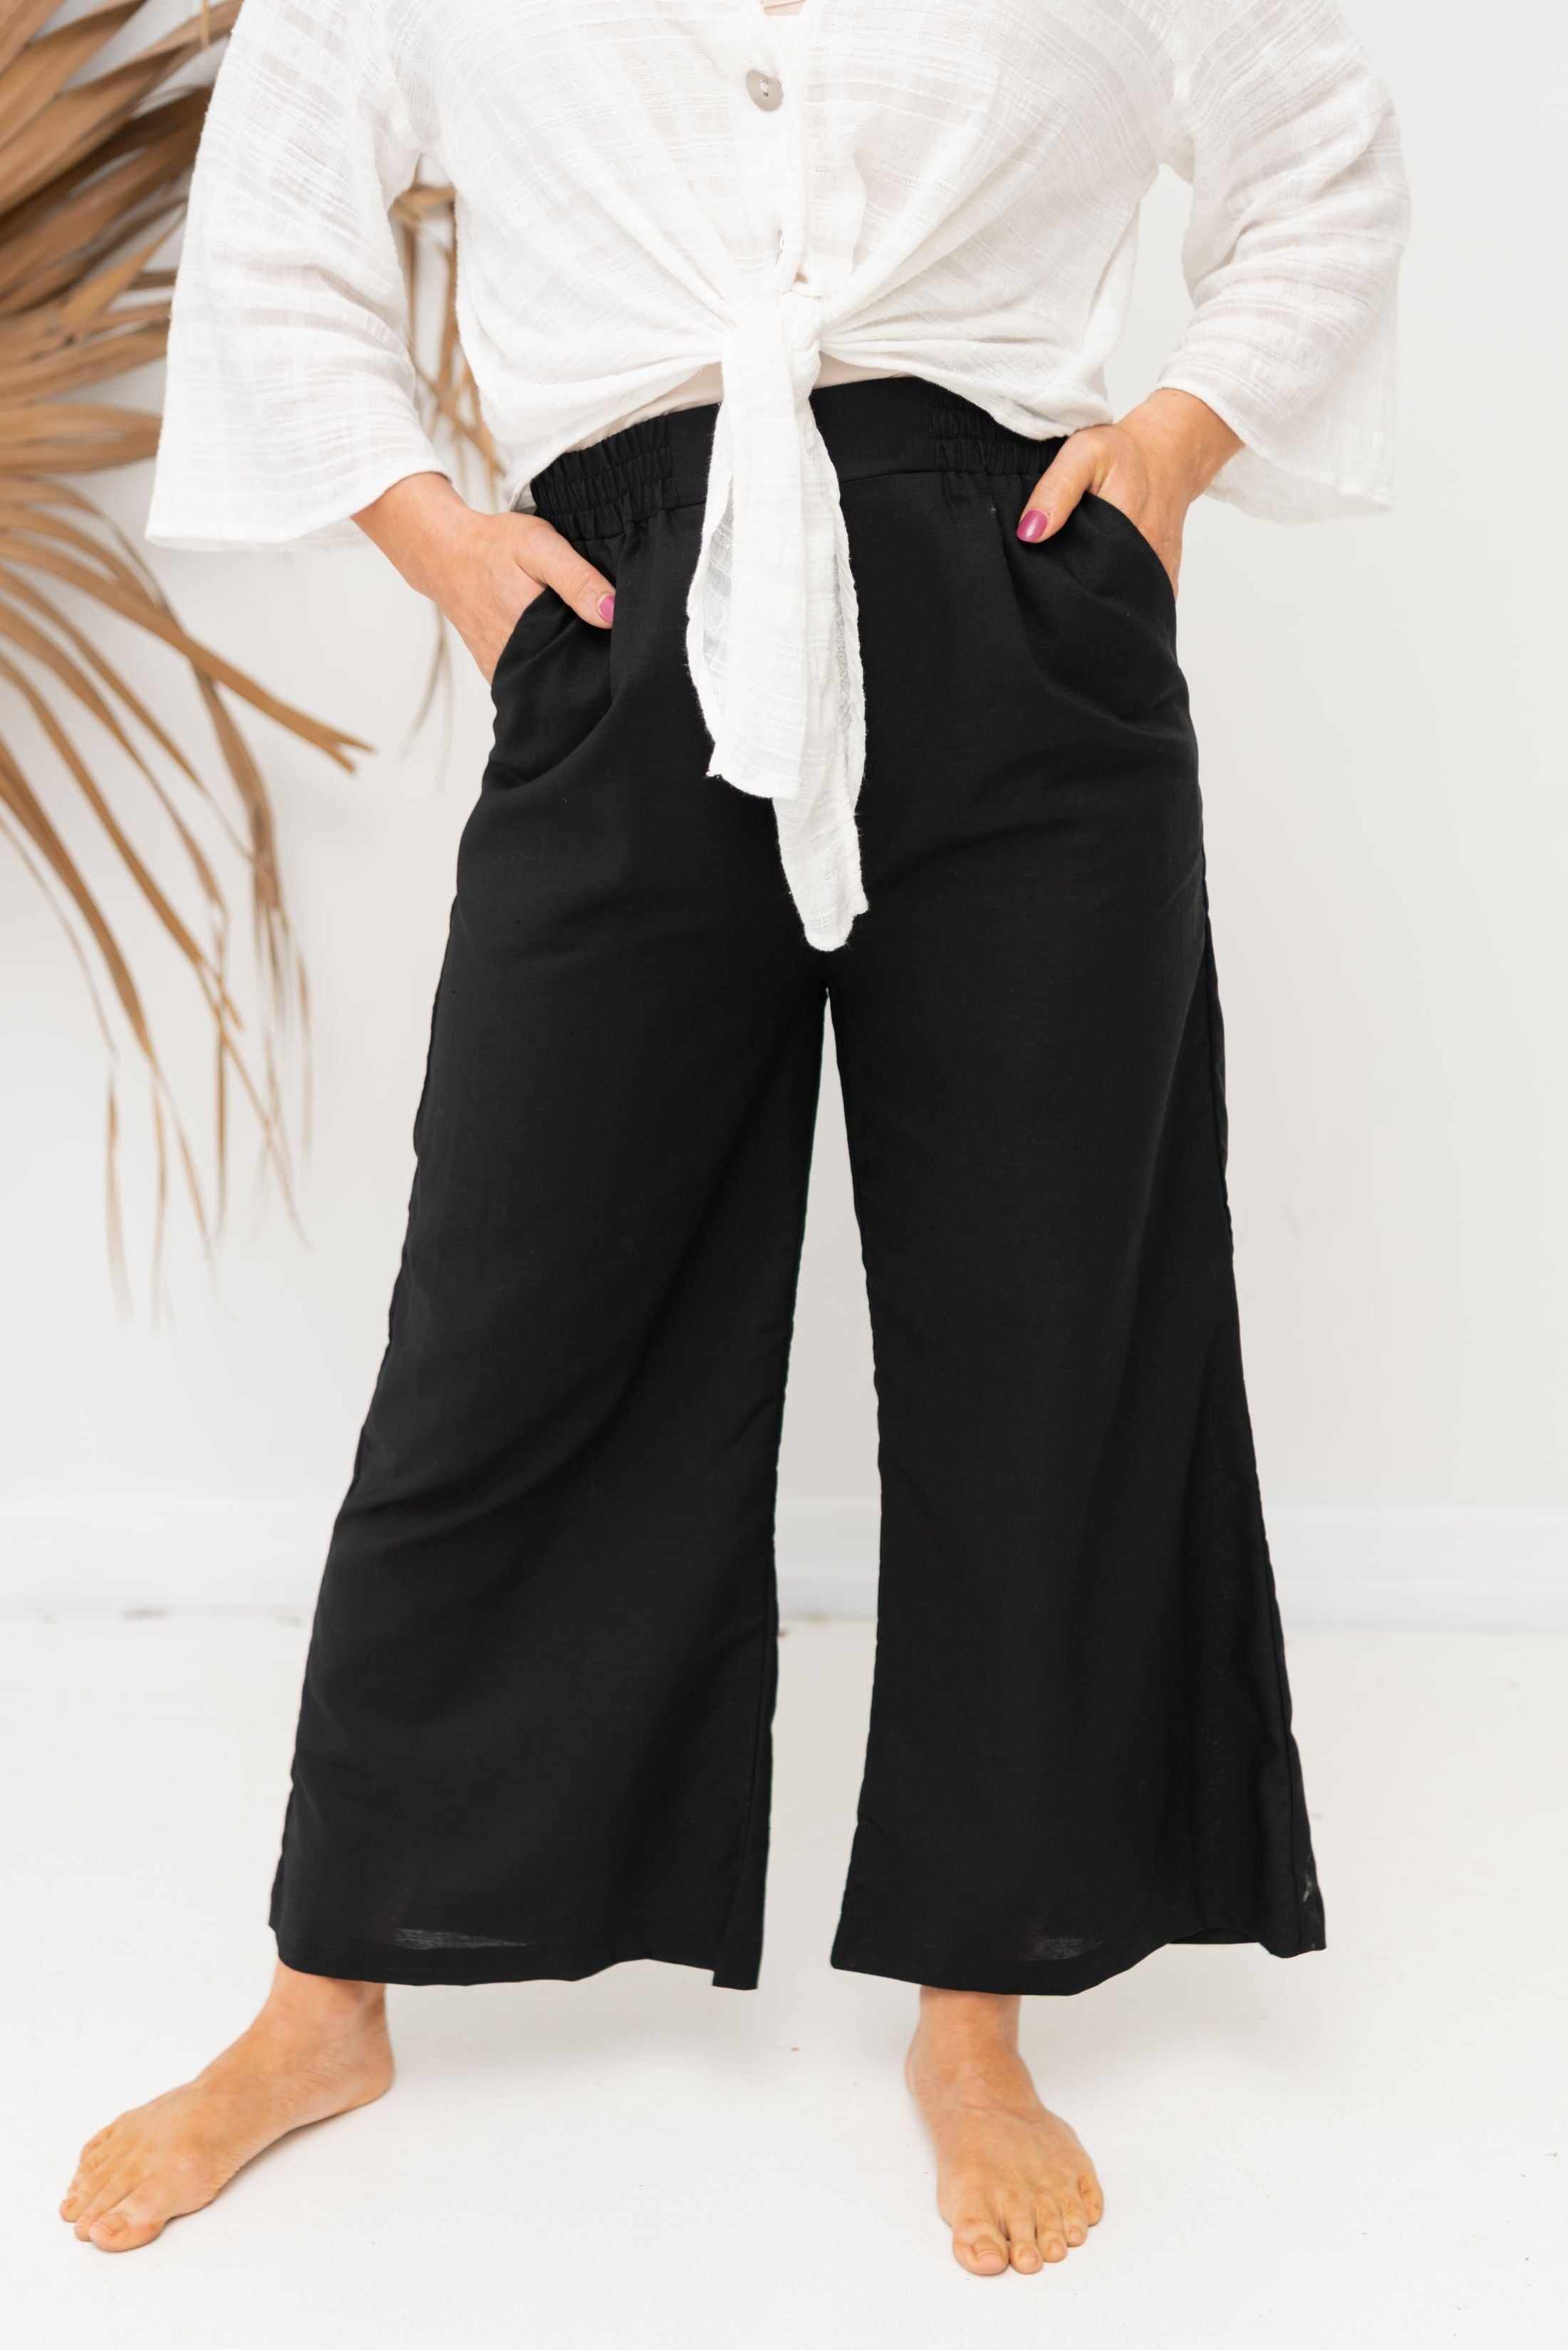 ARABELLA PANT - Black